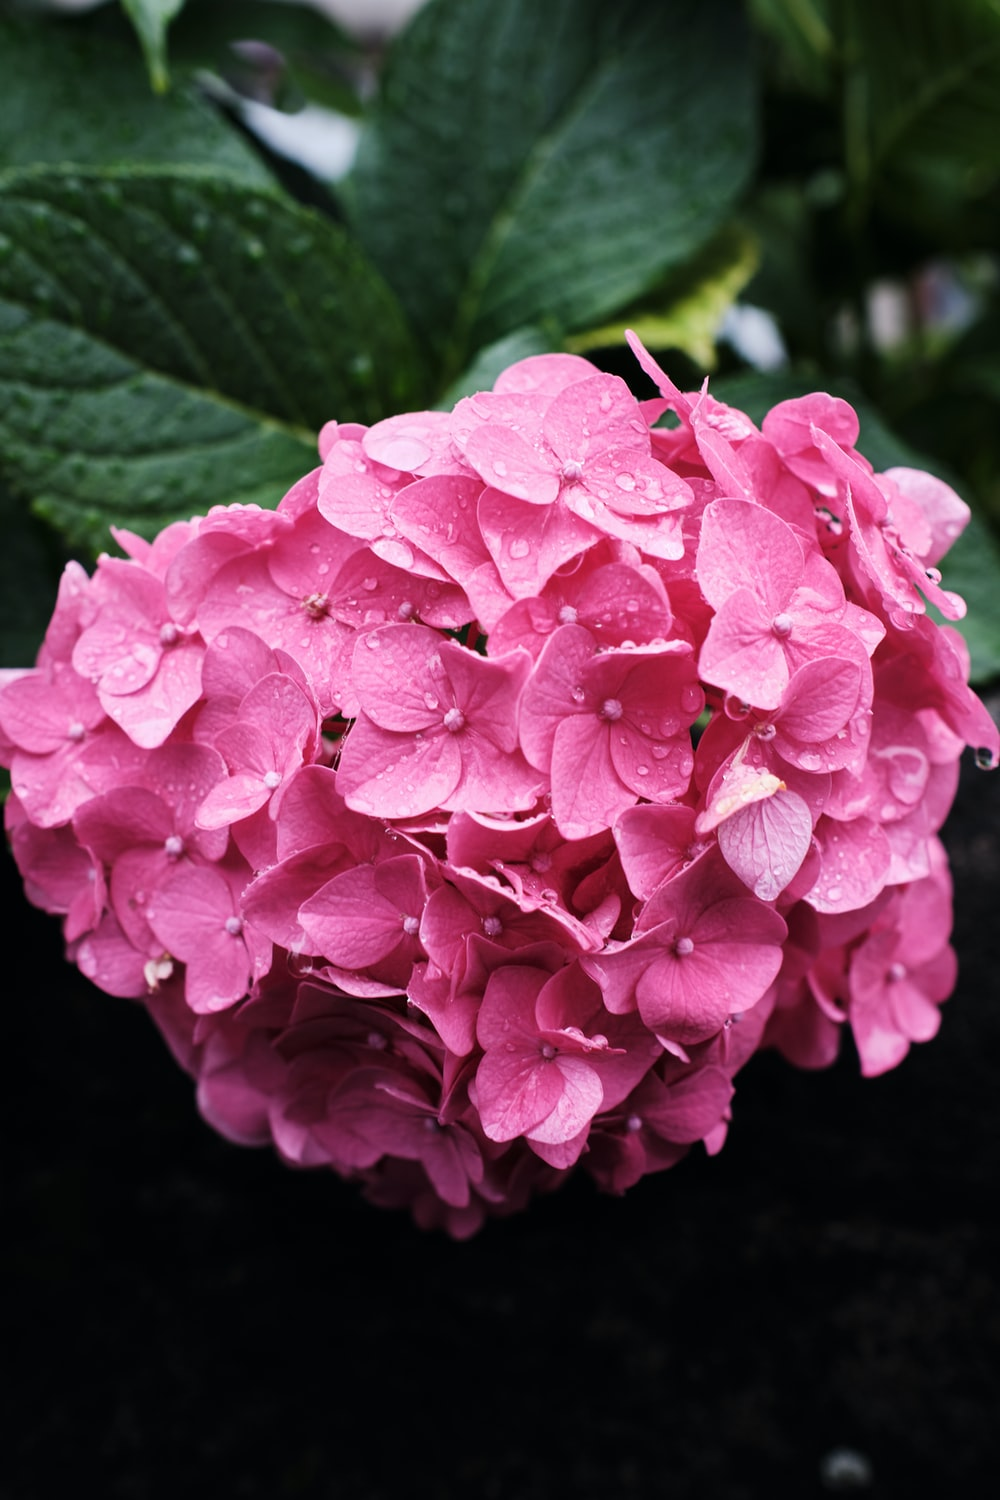 pink flower in close up photography